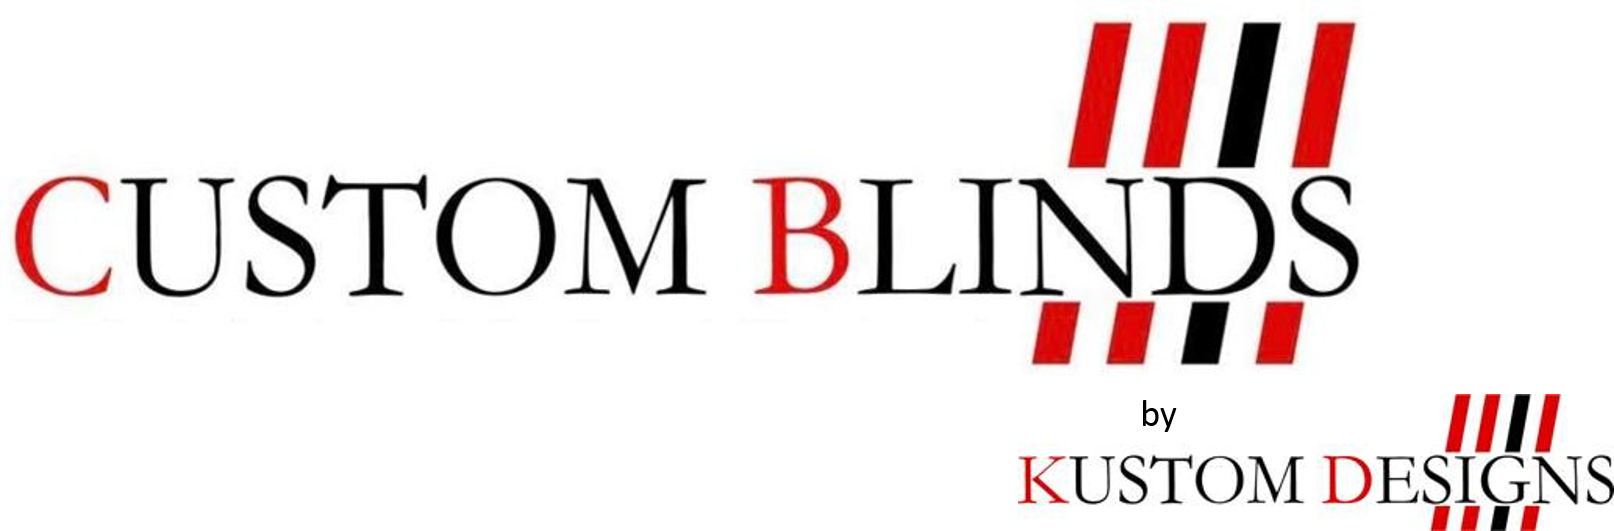 Custom Blinds Knysna